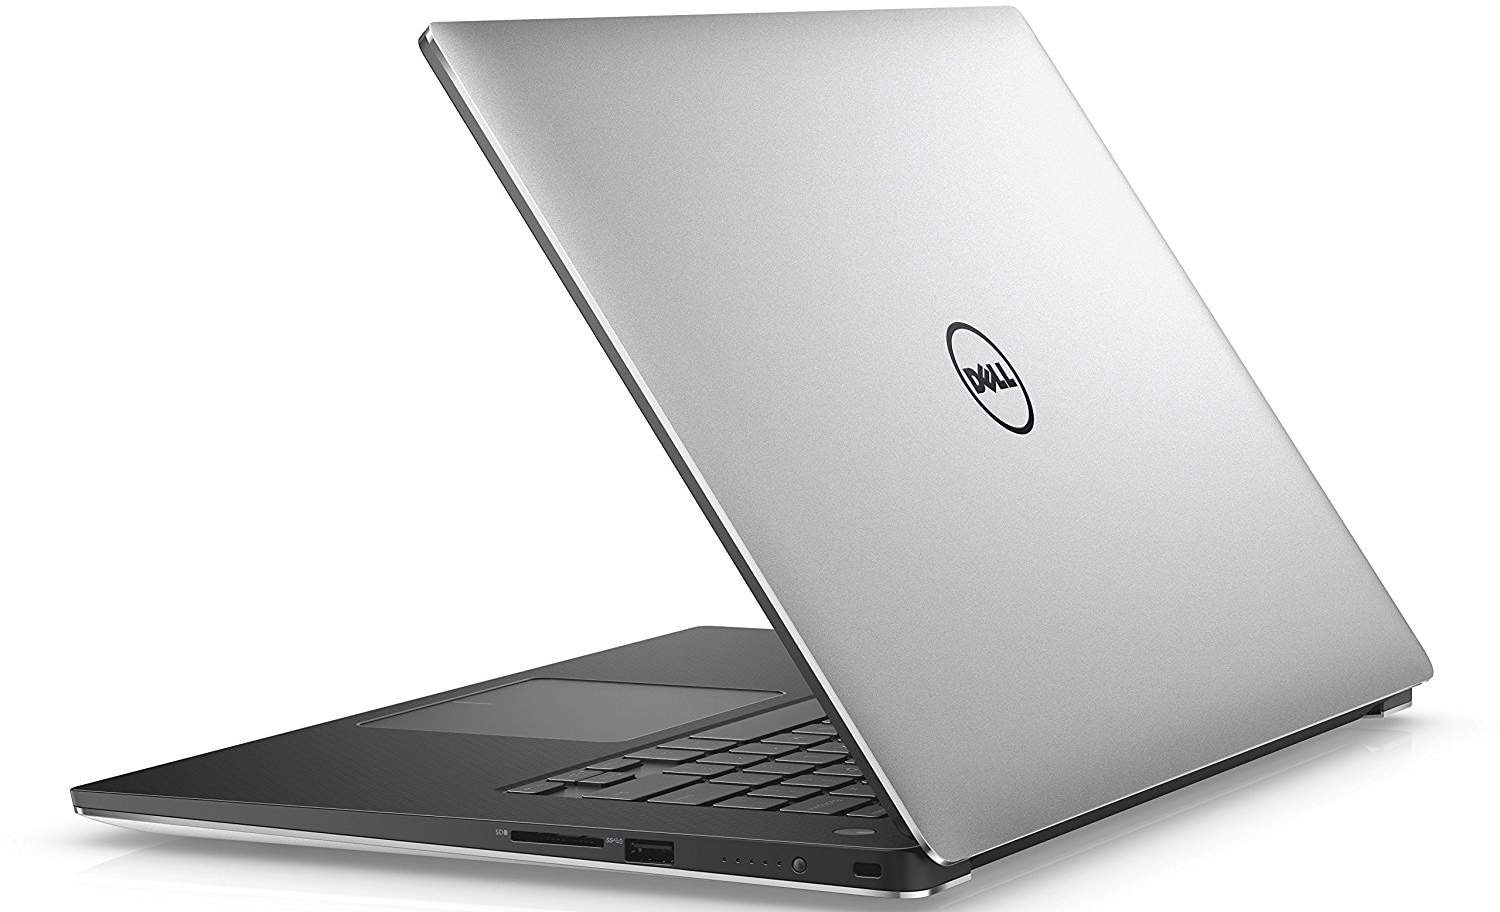 Dell PRM5520HN0C2 Precision 5520 39.62 Cm (15.6) Mobile Workstation (16 GB, 512 GB, Intel Core I7)